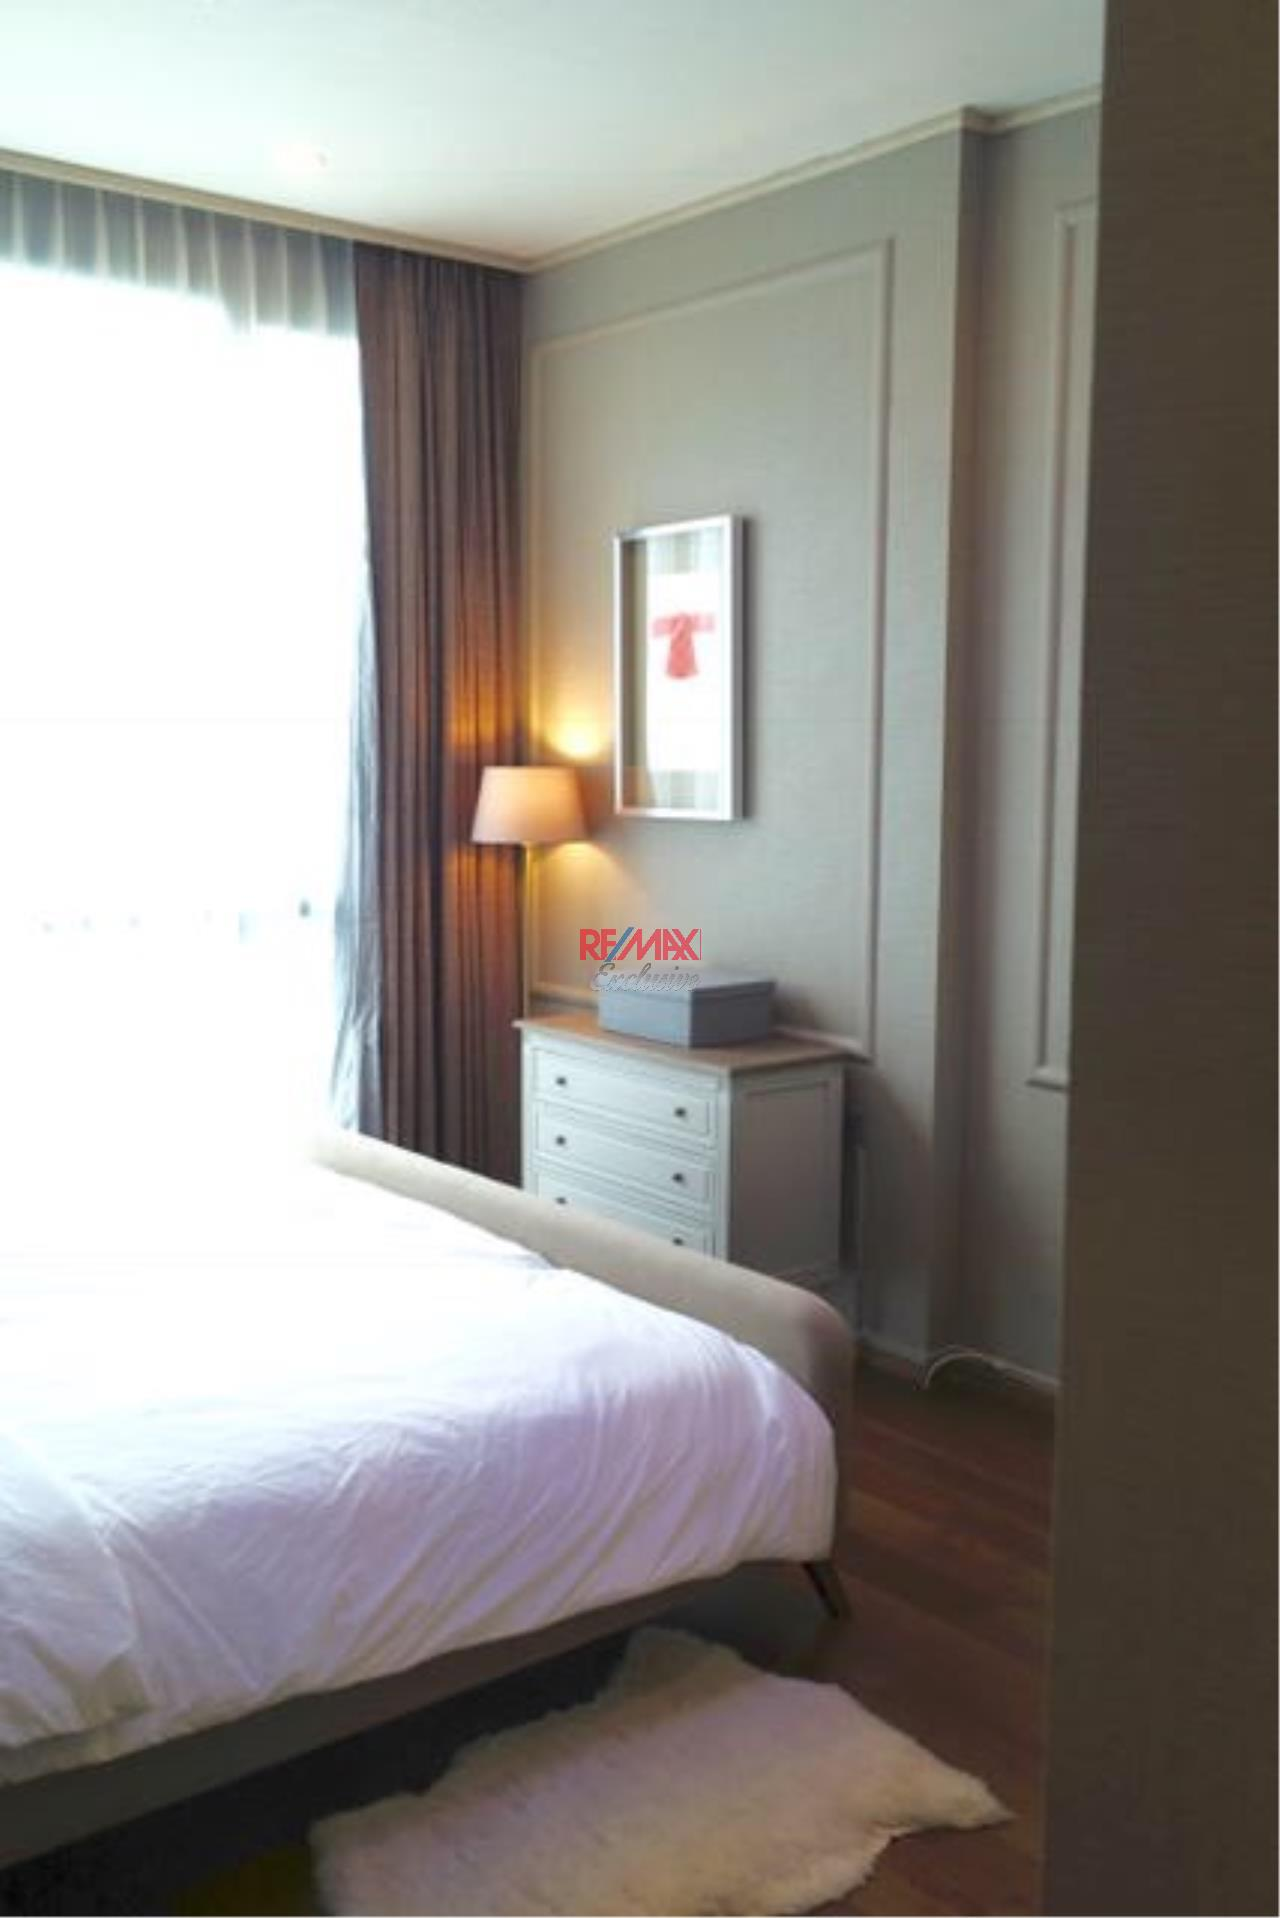 RE/MAX Exclusive Agency's Quattro 2 bedroom luxury deco for rent 75,000 THb 8